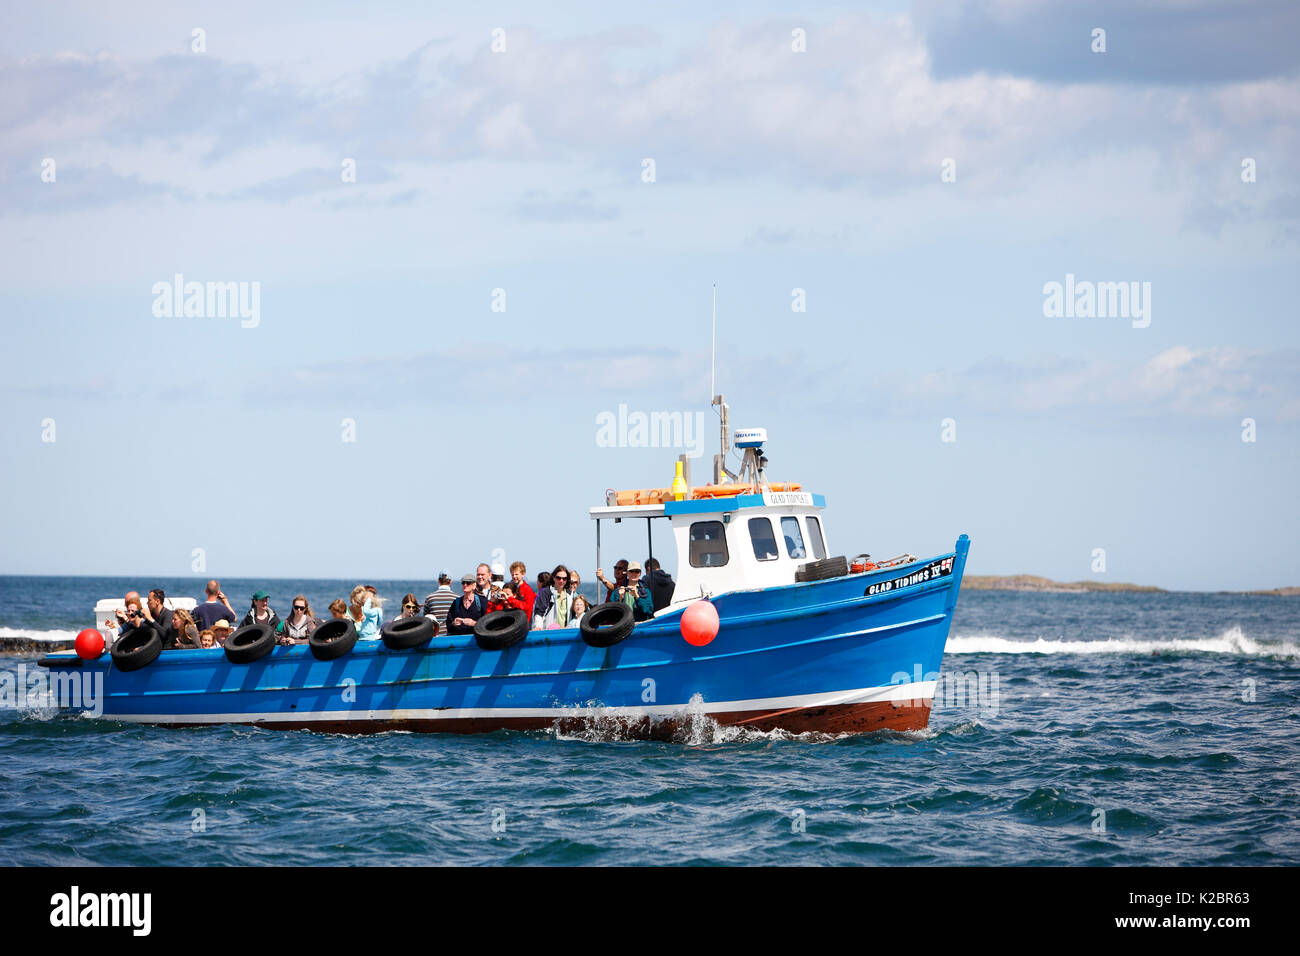 Passenger boat travelling between the Farne Islands and Seahouses, Northumberland, England, UK. July 2009. All non-editorial uses must be cleared individually. - Stock Image